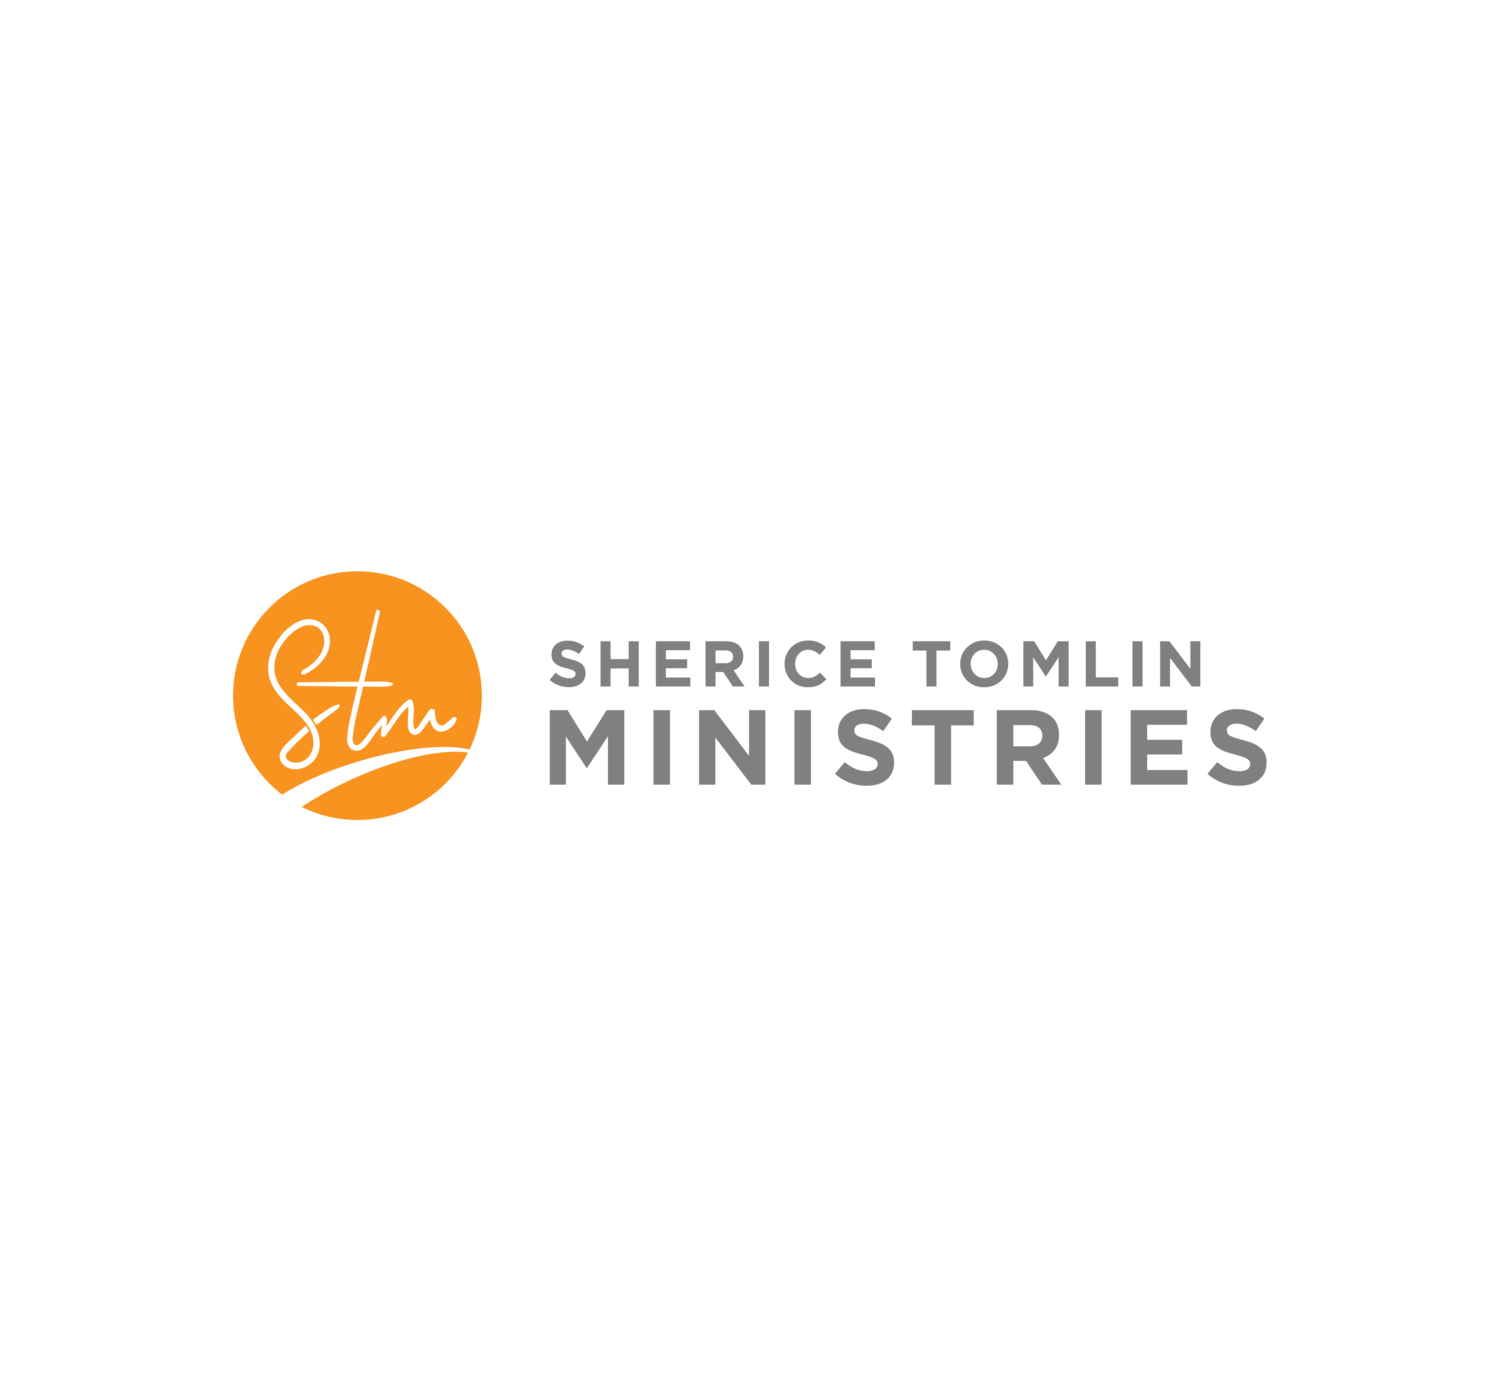 Sherice Tomlin Ministries